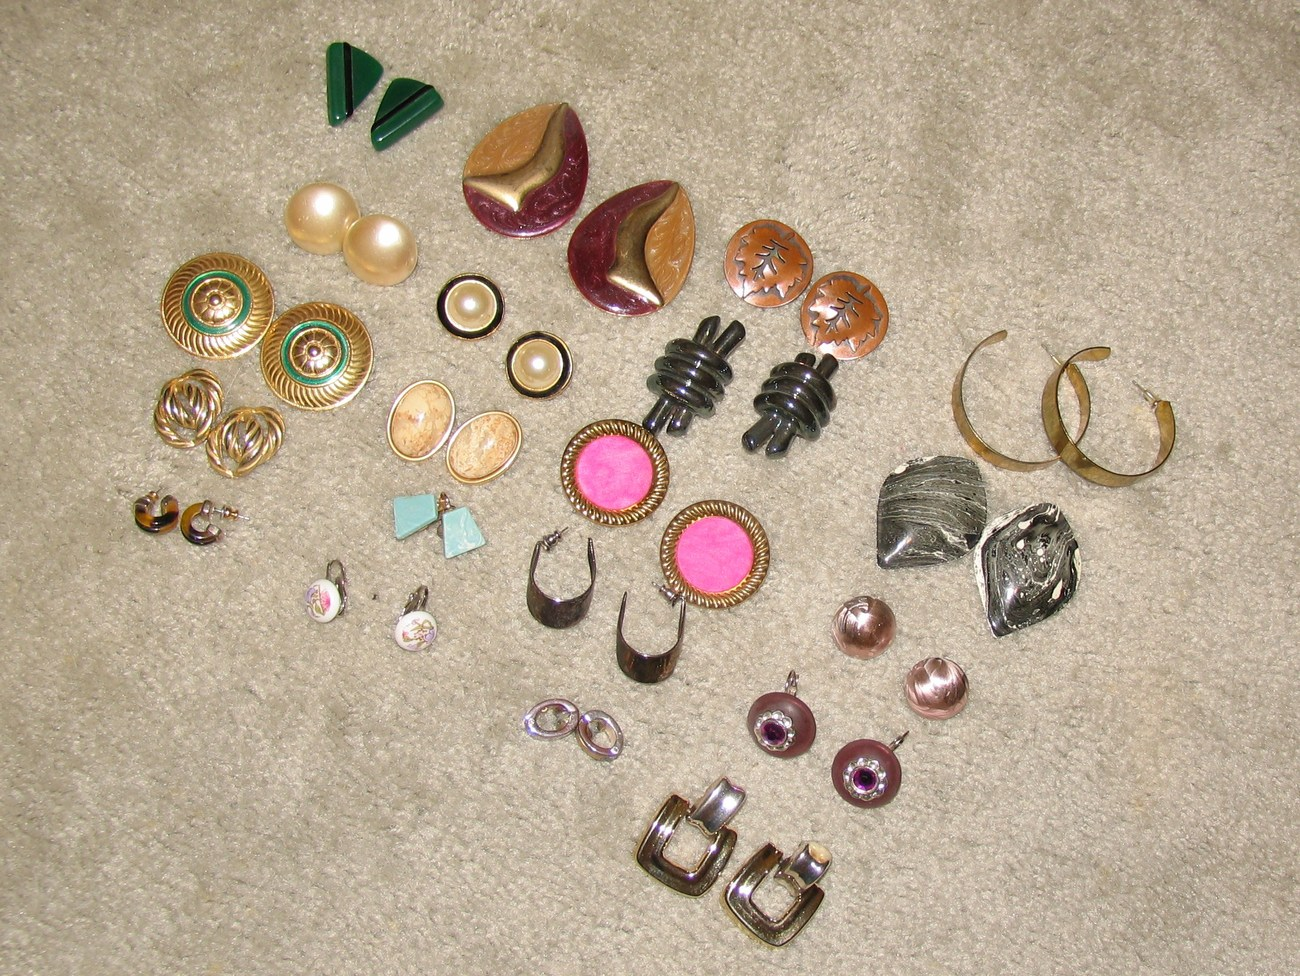 Vintage Lot: 20 Pr Clip On,Screw Back, Pierced Earrings